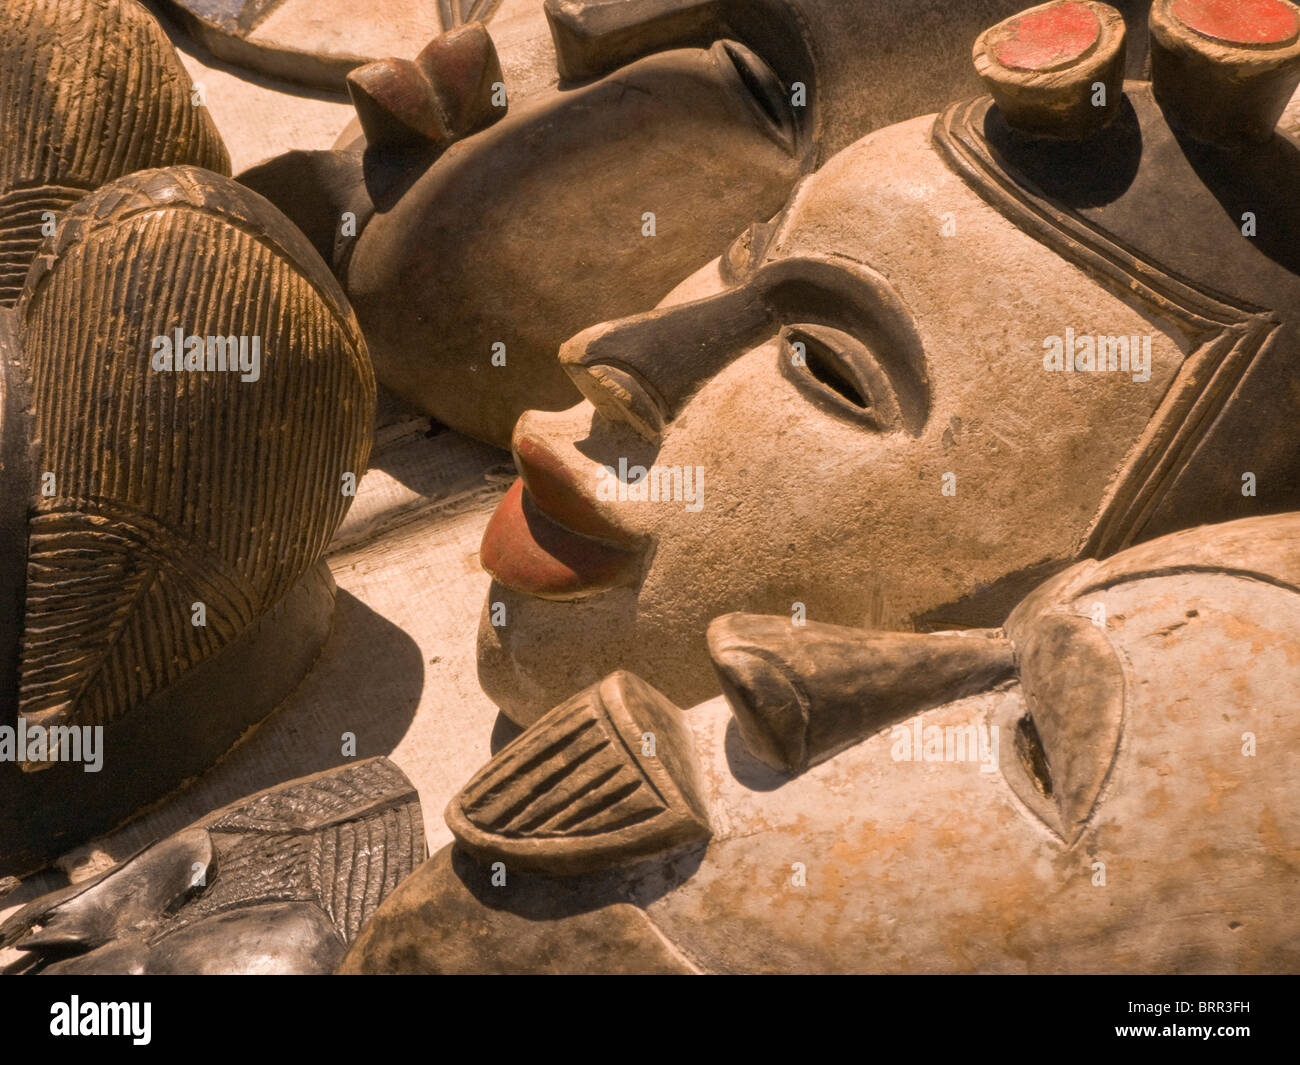 African hand-crafted masks - Stock Image